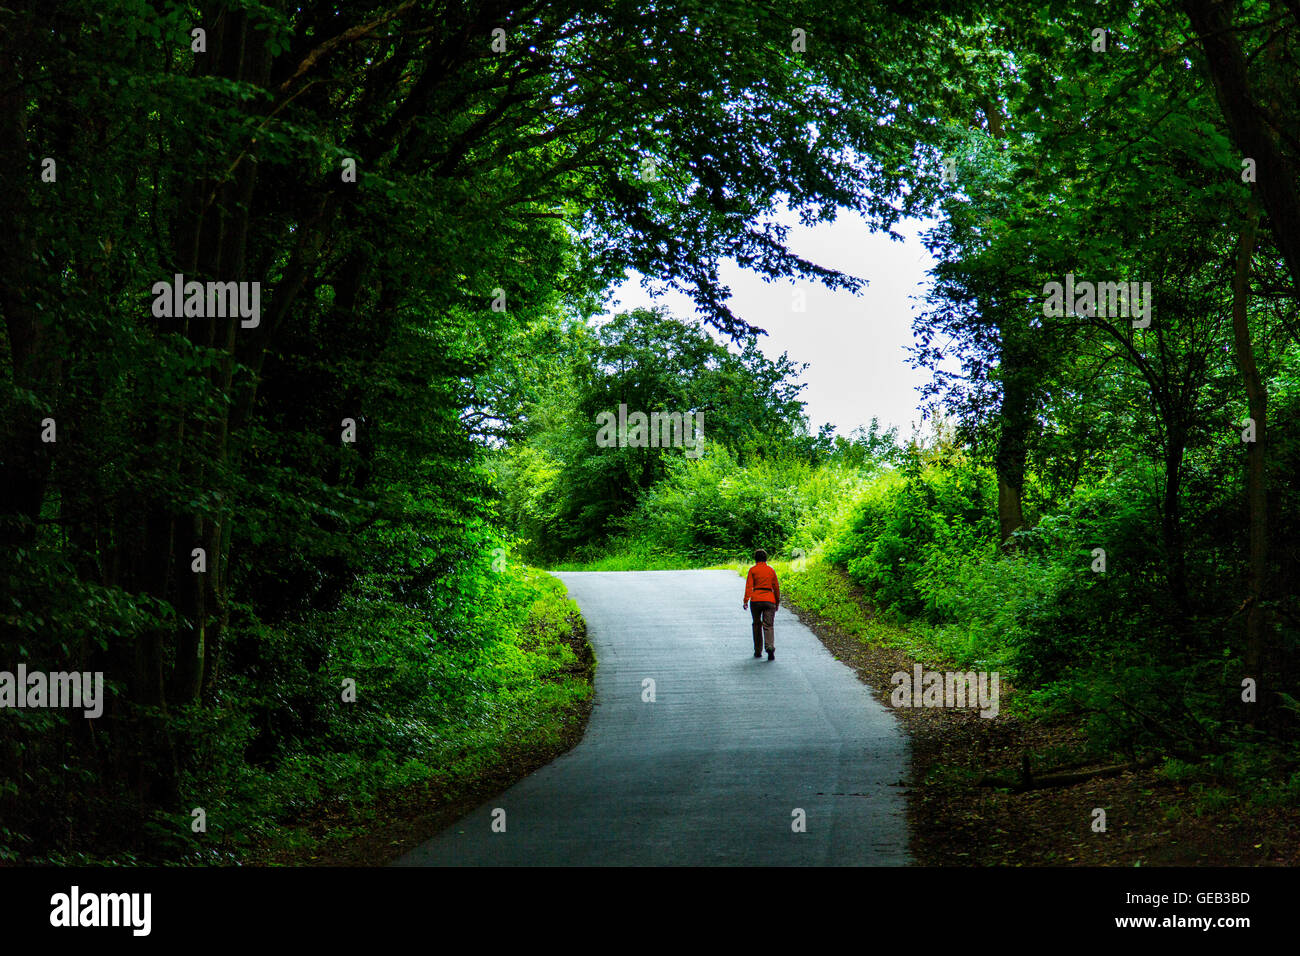 A single person in walking on a way in a dark forest into the light, - Stock Image